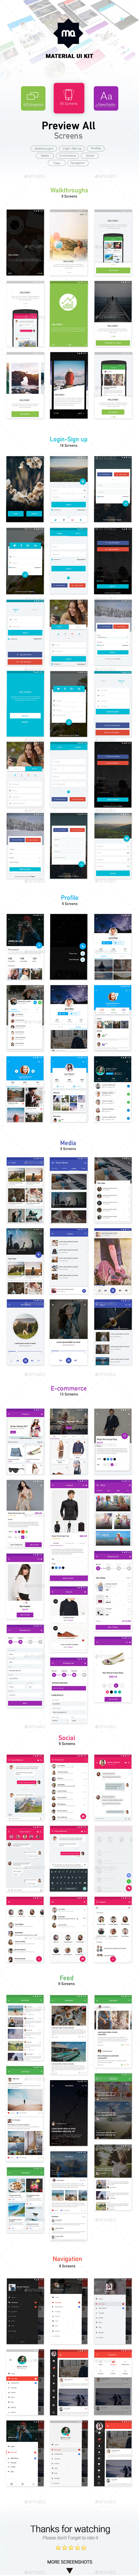 Material Mobile UI Kit (User Interfaces)